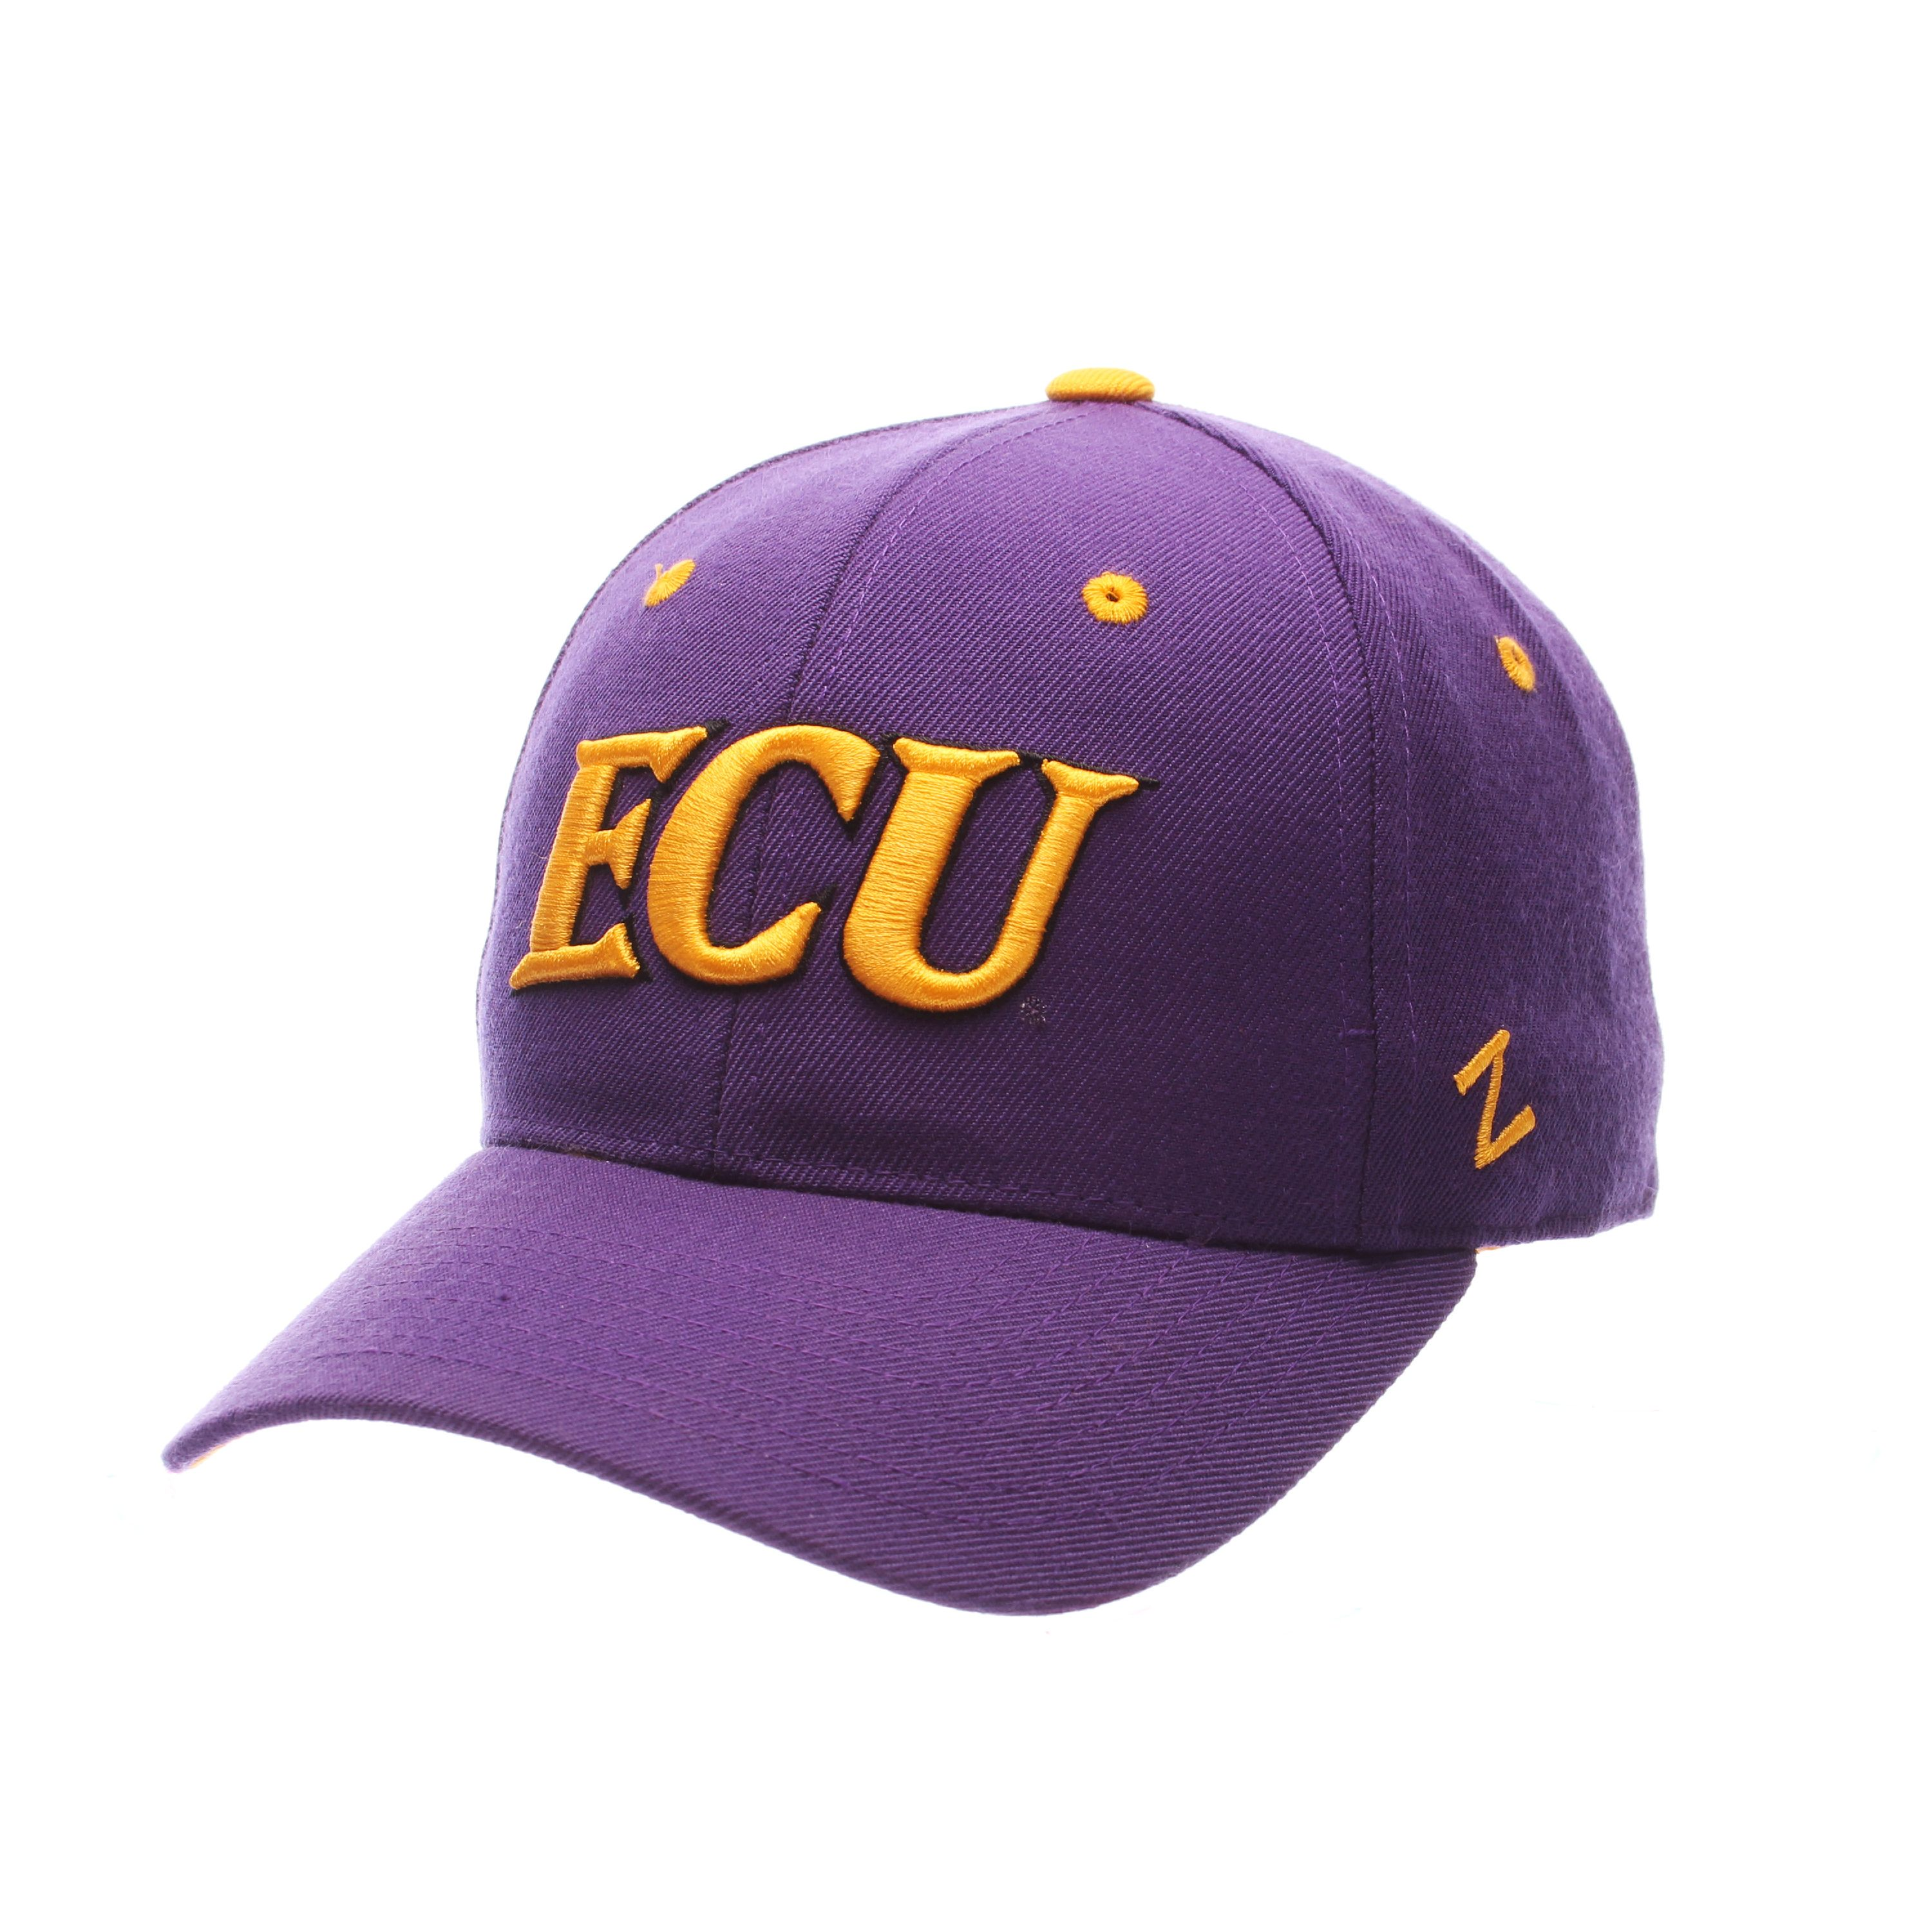 East Carolina Pirates DH Fitted Hat (Purple)